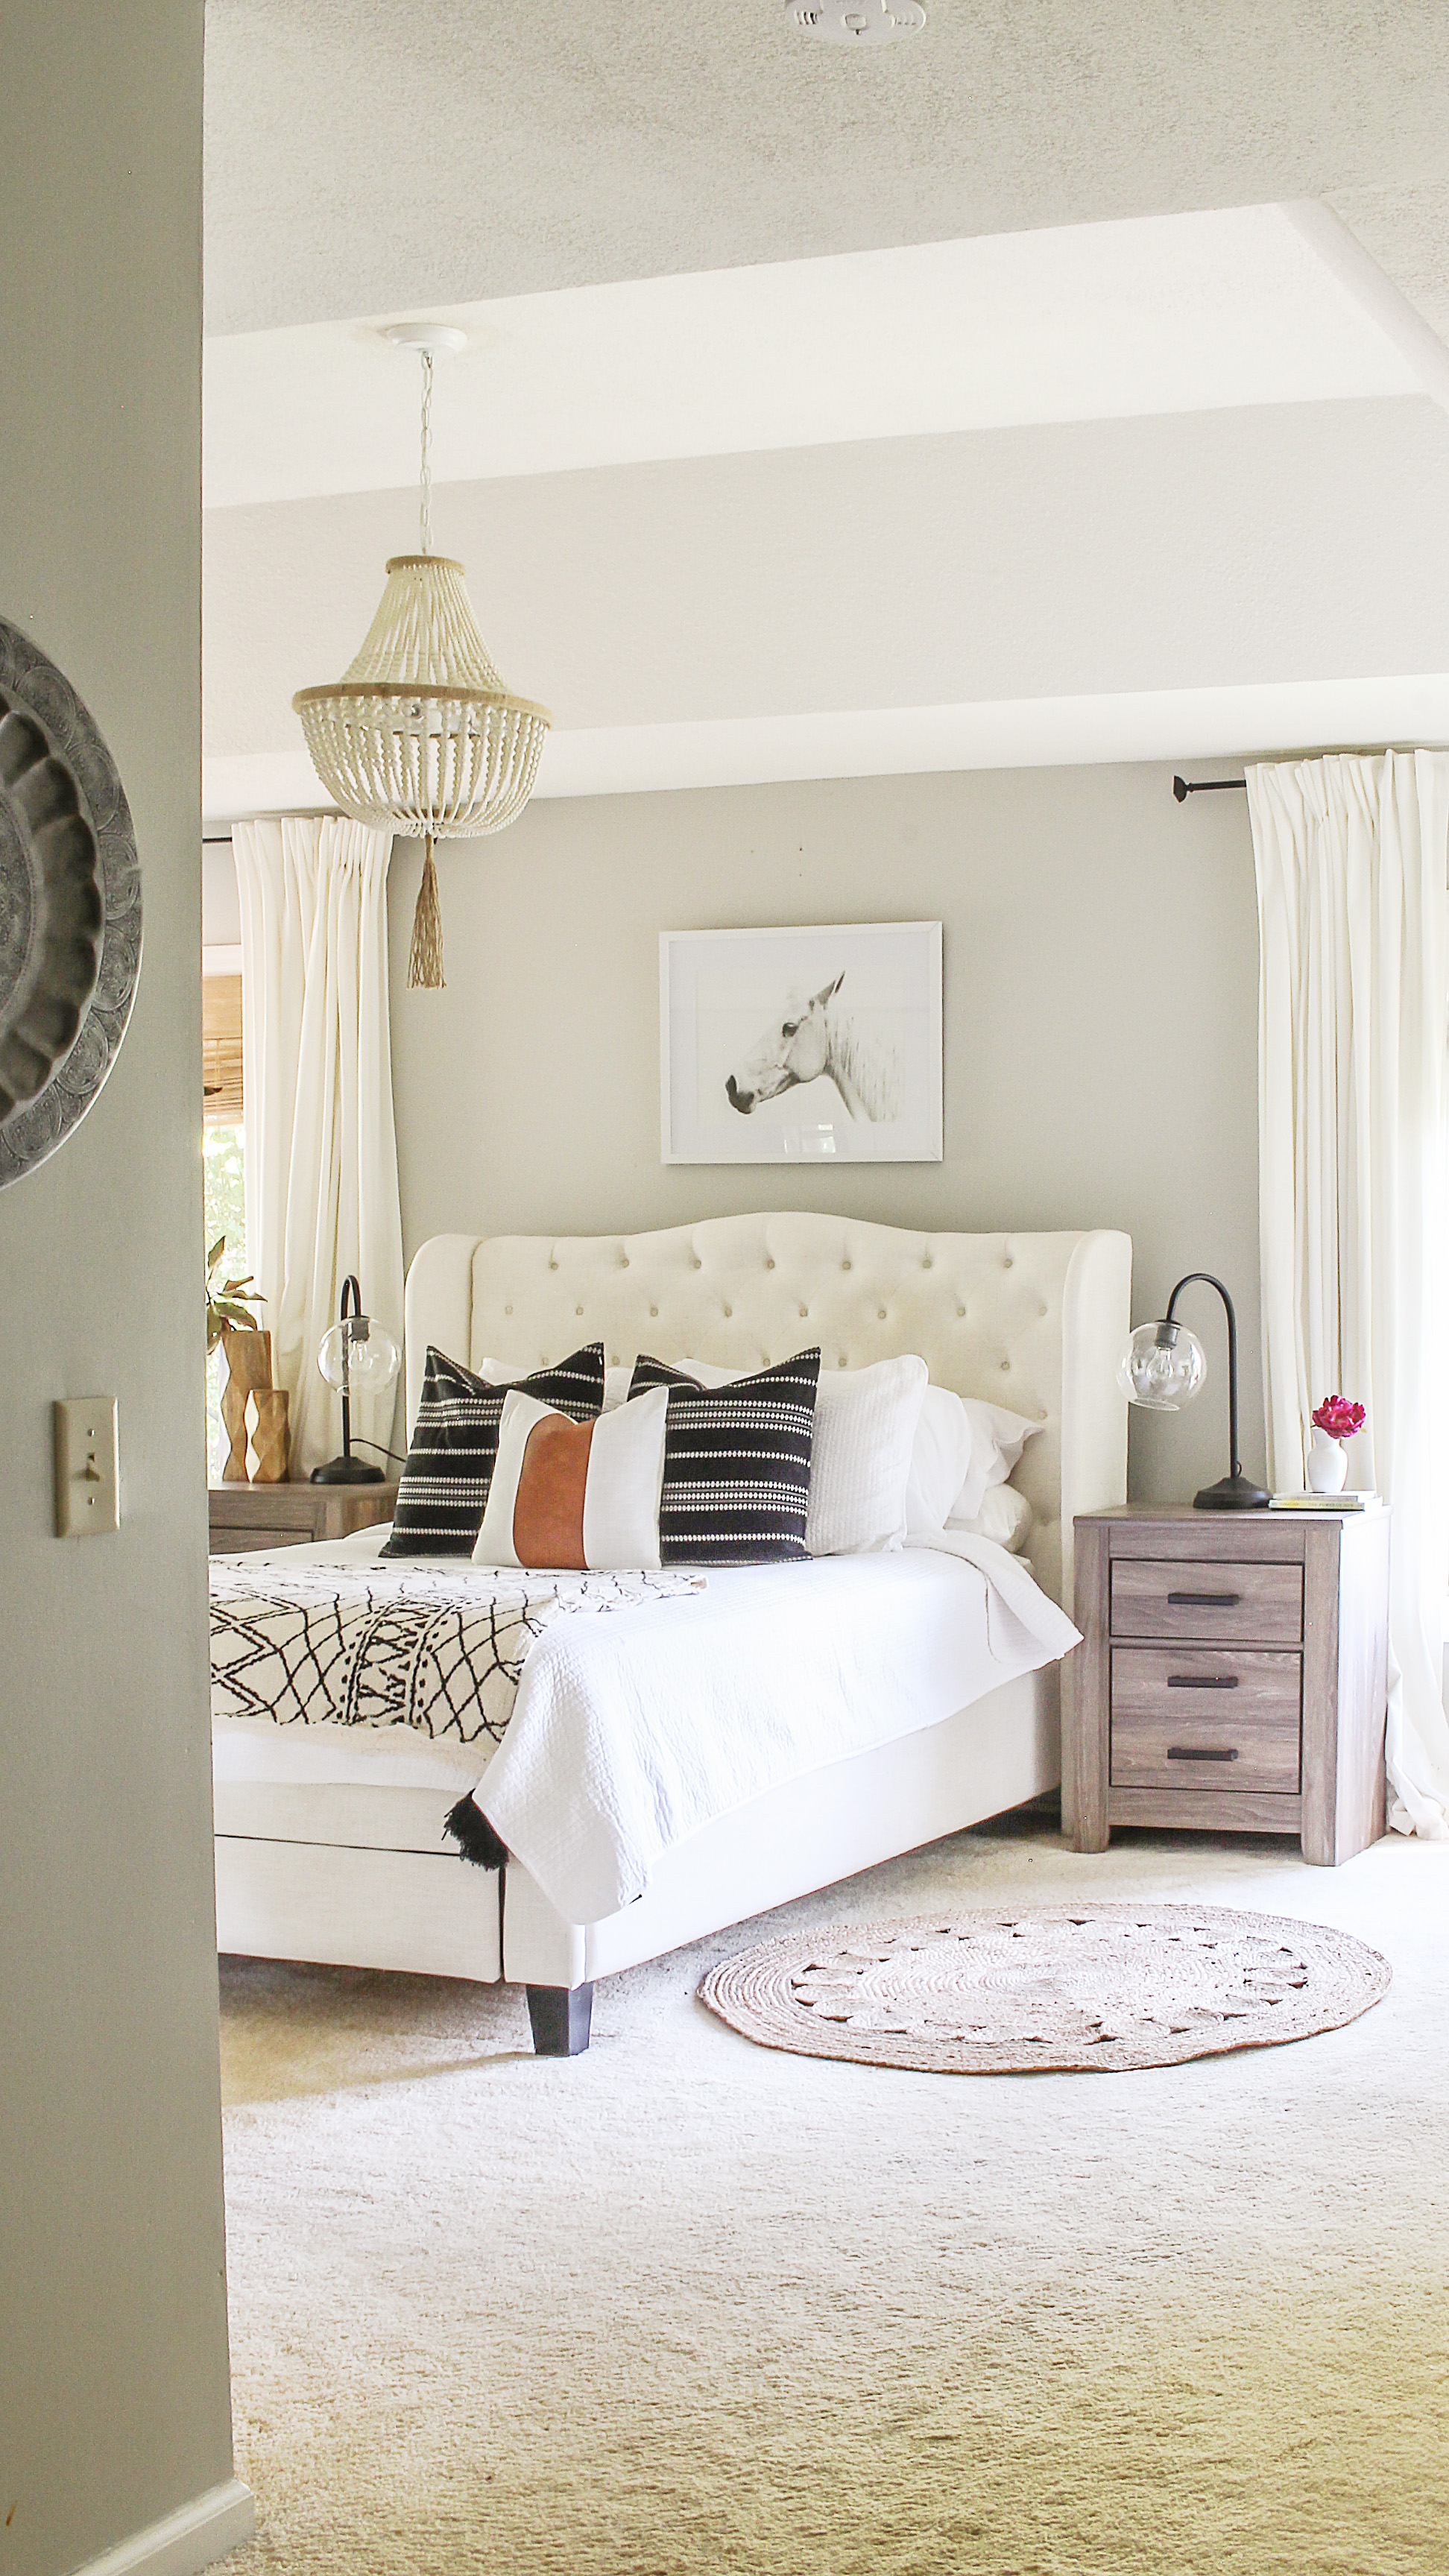 Modern Farmhouse Bedroom Refresh on a Budget